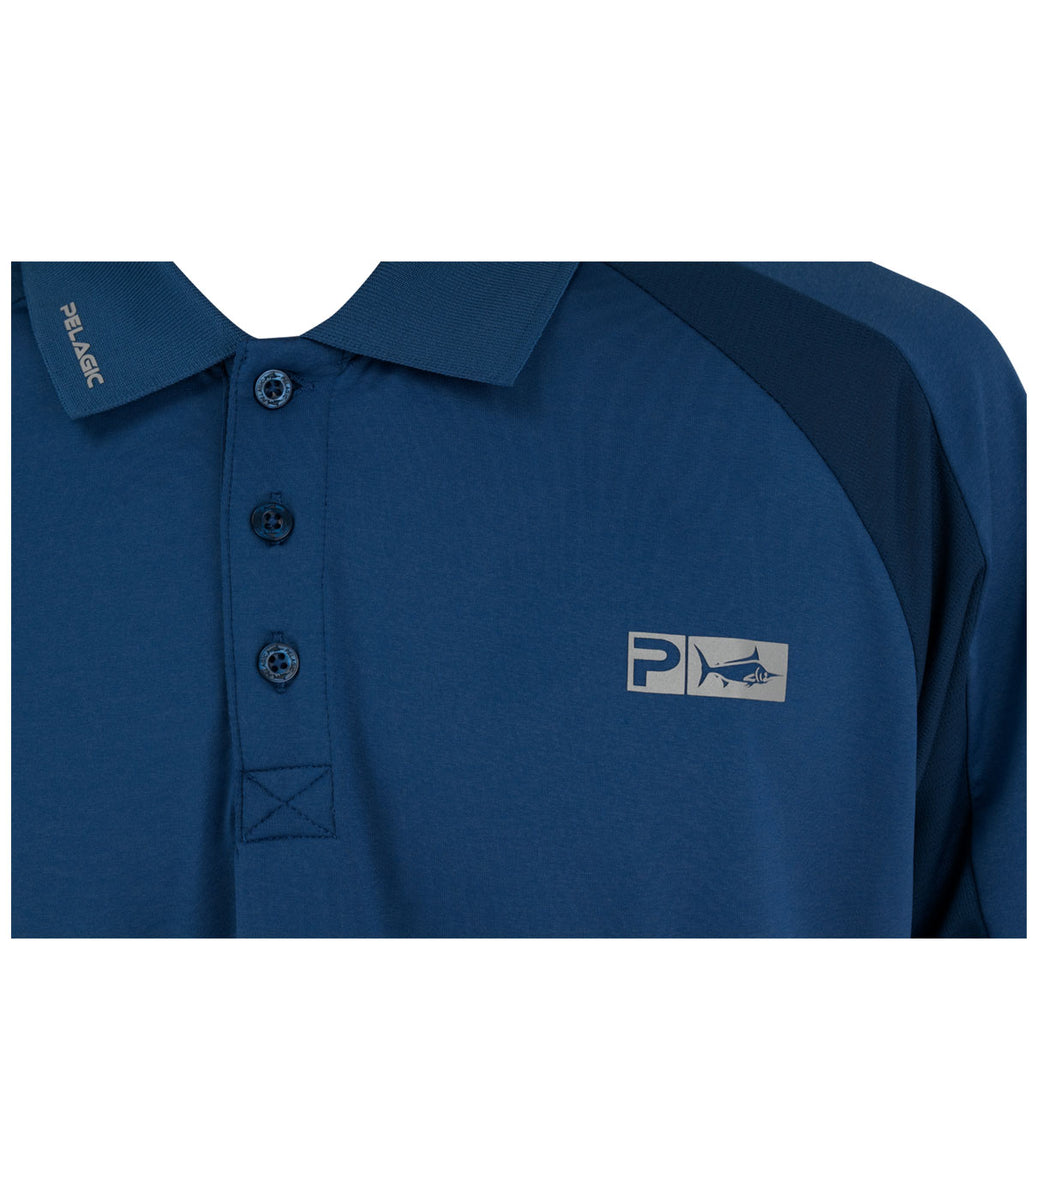 Performance Polo Pro Big Image - 3